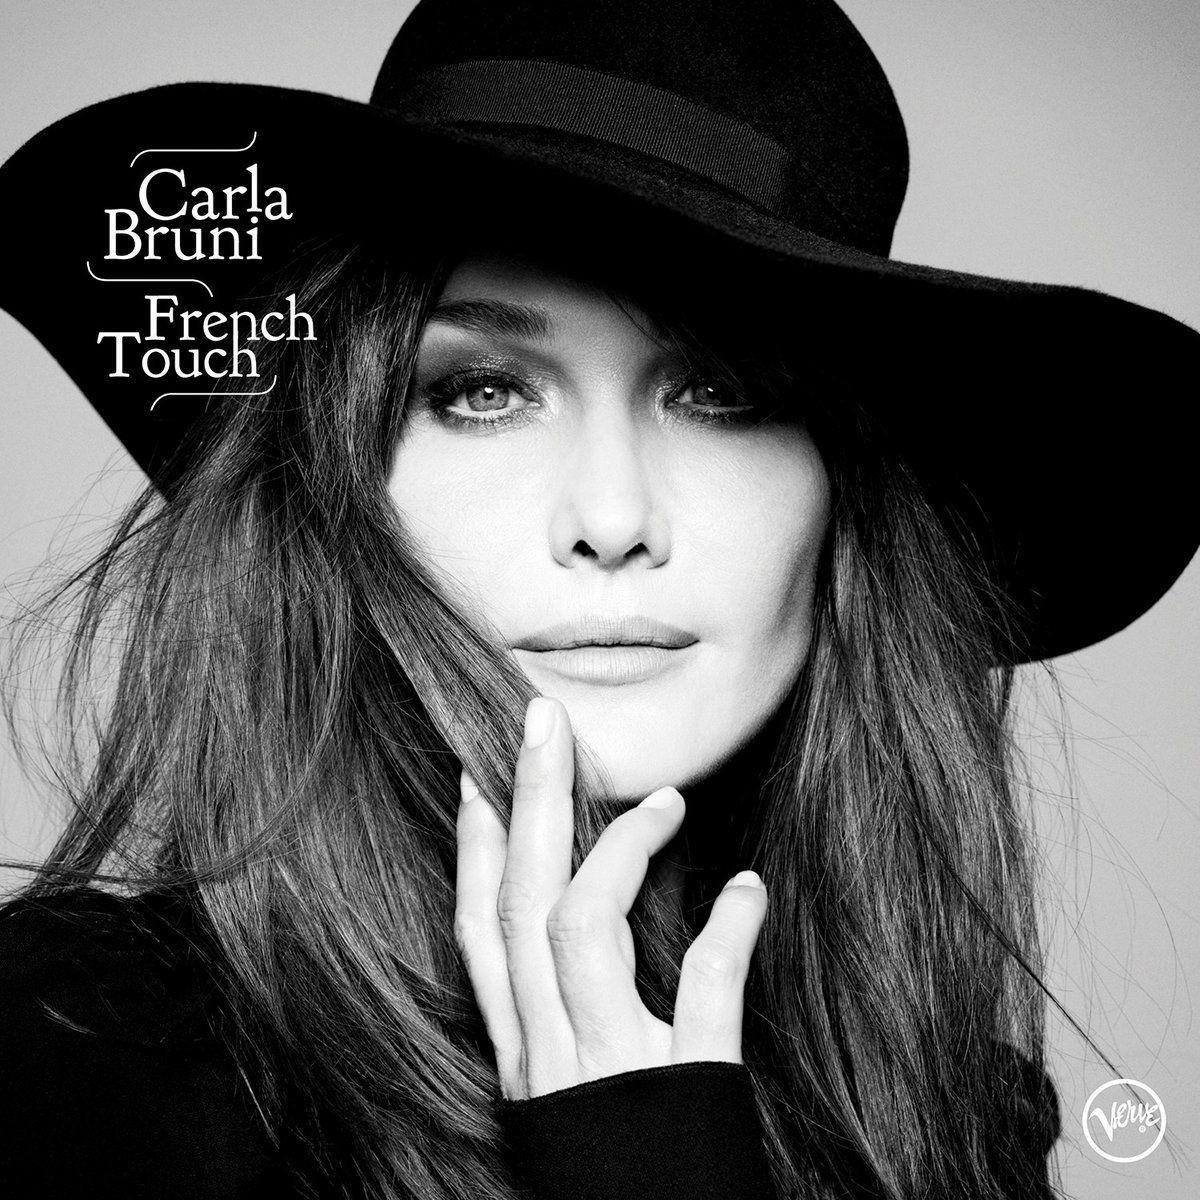 French Touch PL CD) Carla Bruni